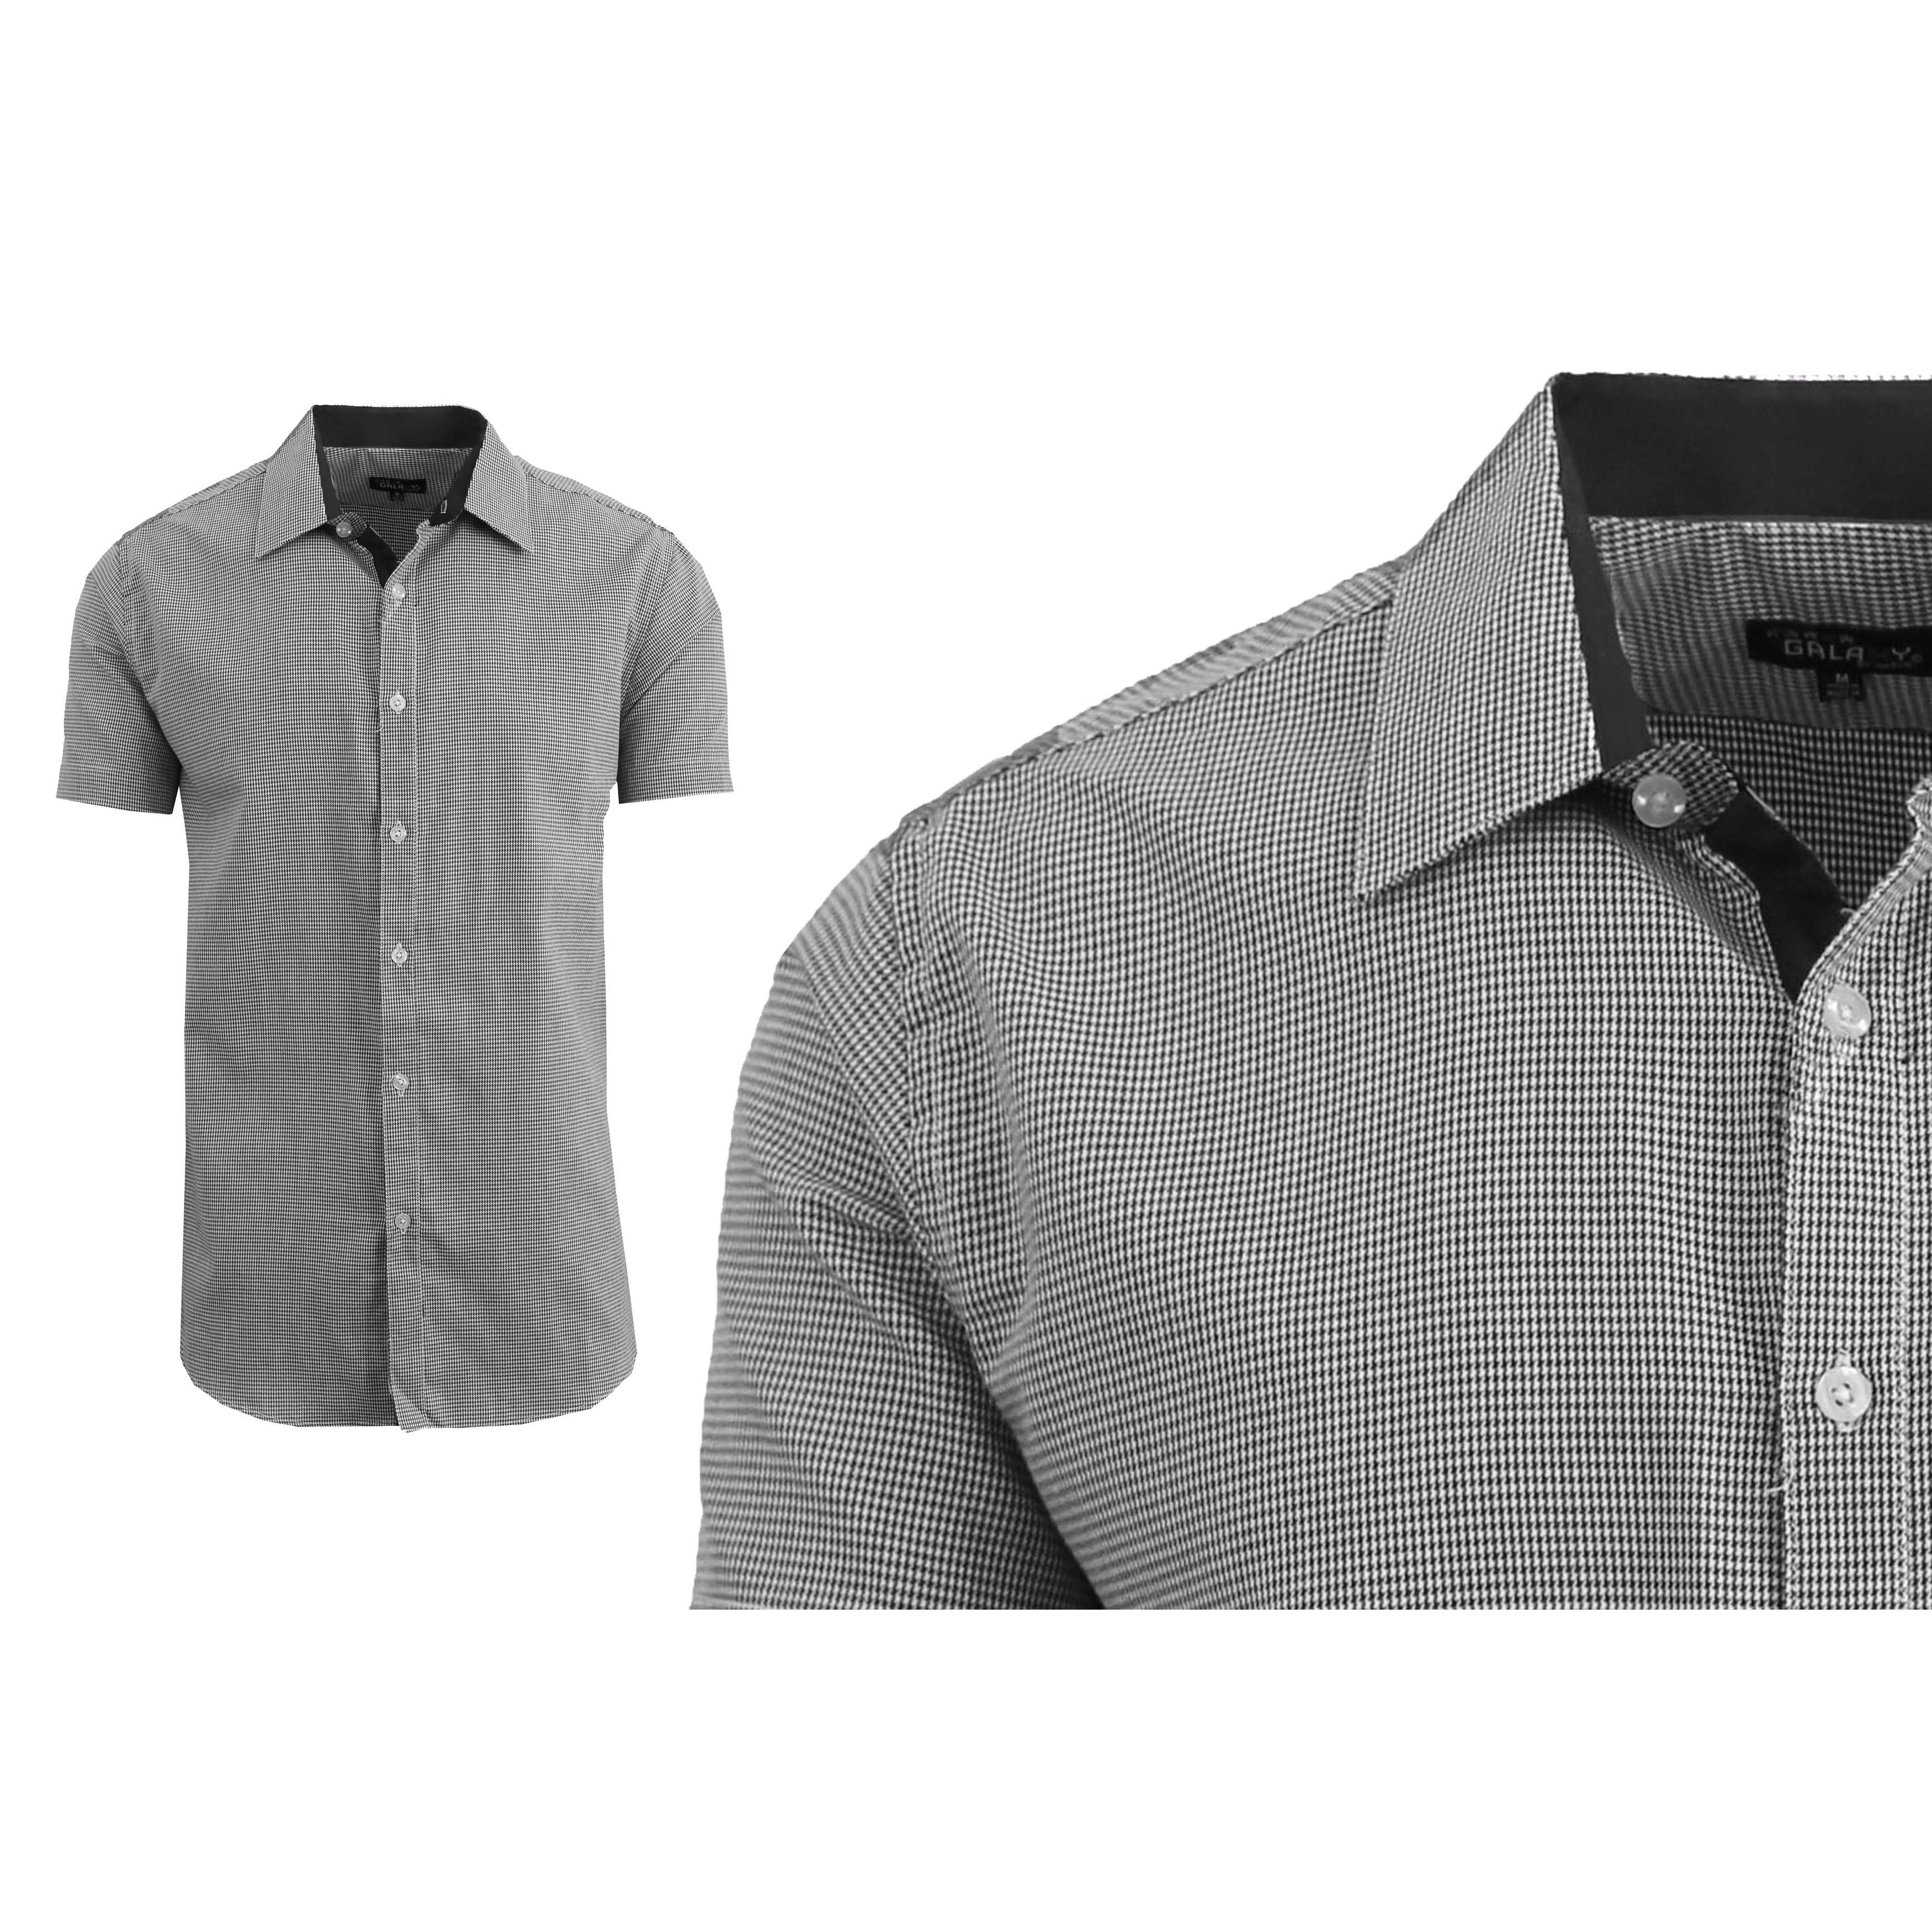 8c8aa42273b Galaxy By Harvic Men's Short Sleeve Houndstooth Button Down Dress Shirts